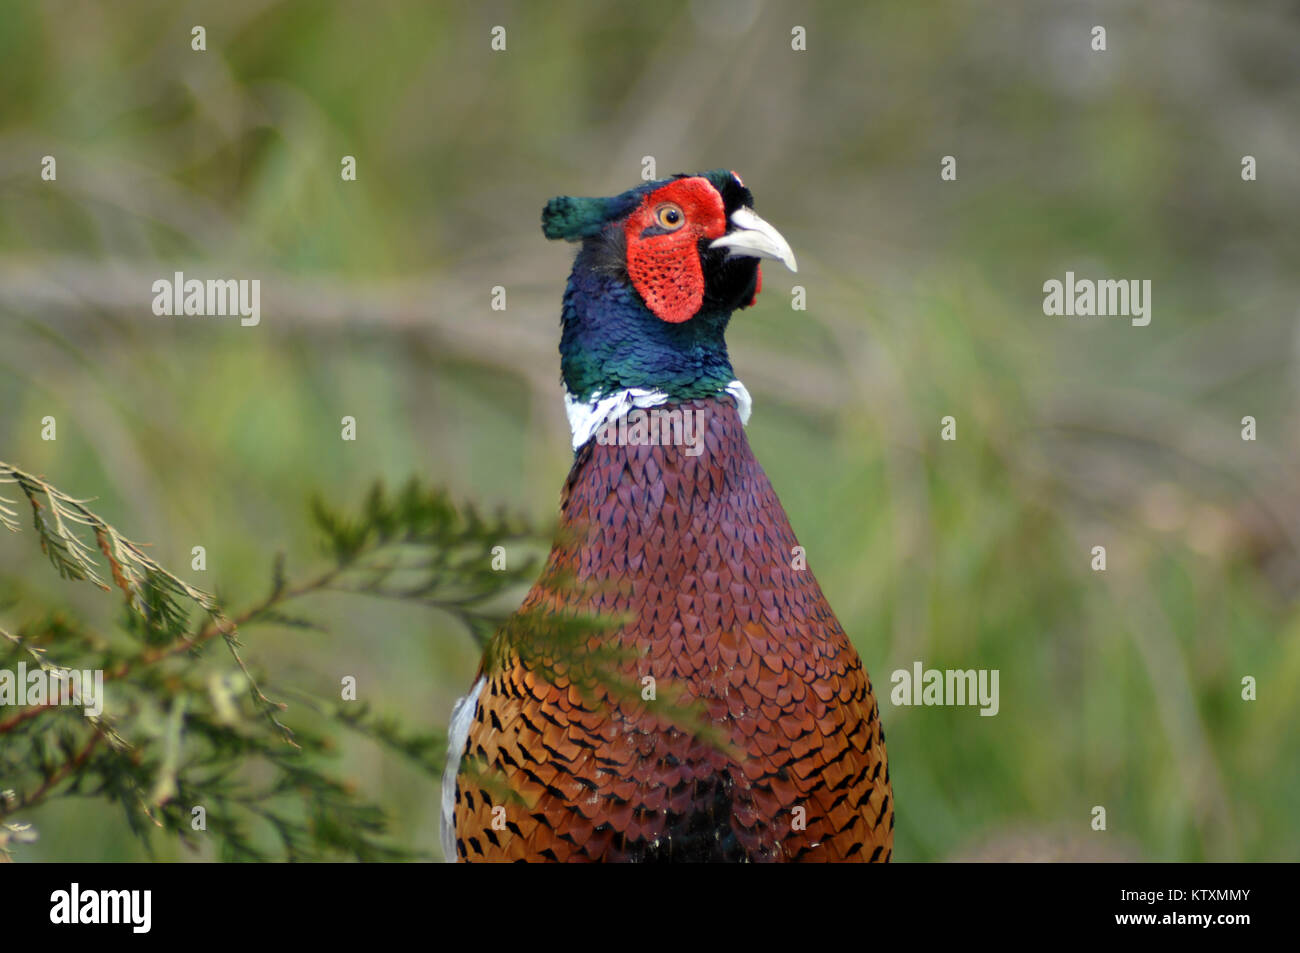 Portrait of gamebird, the male ring-necked pheasant, Phasianus colchicus - Stock Image